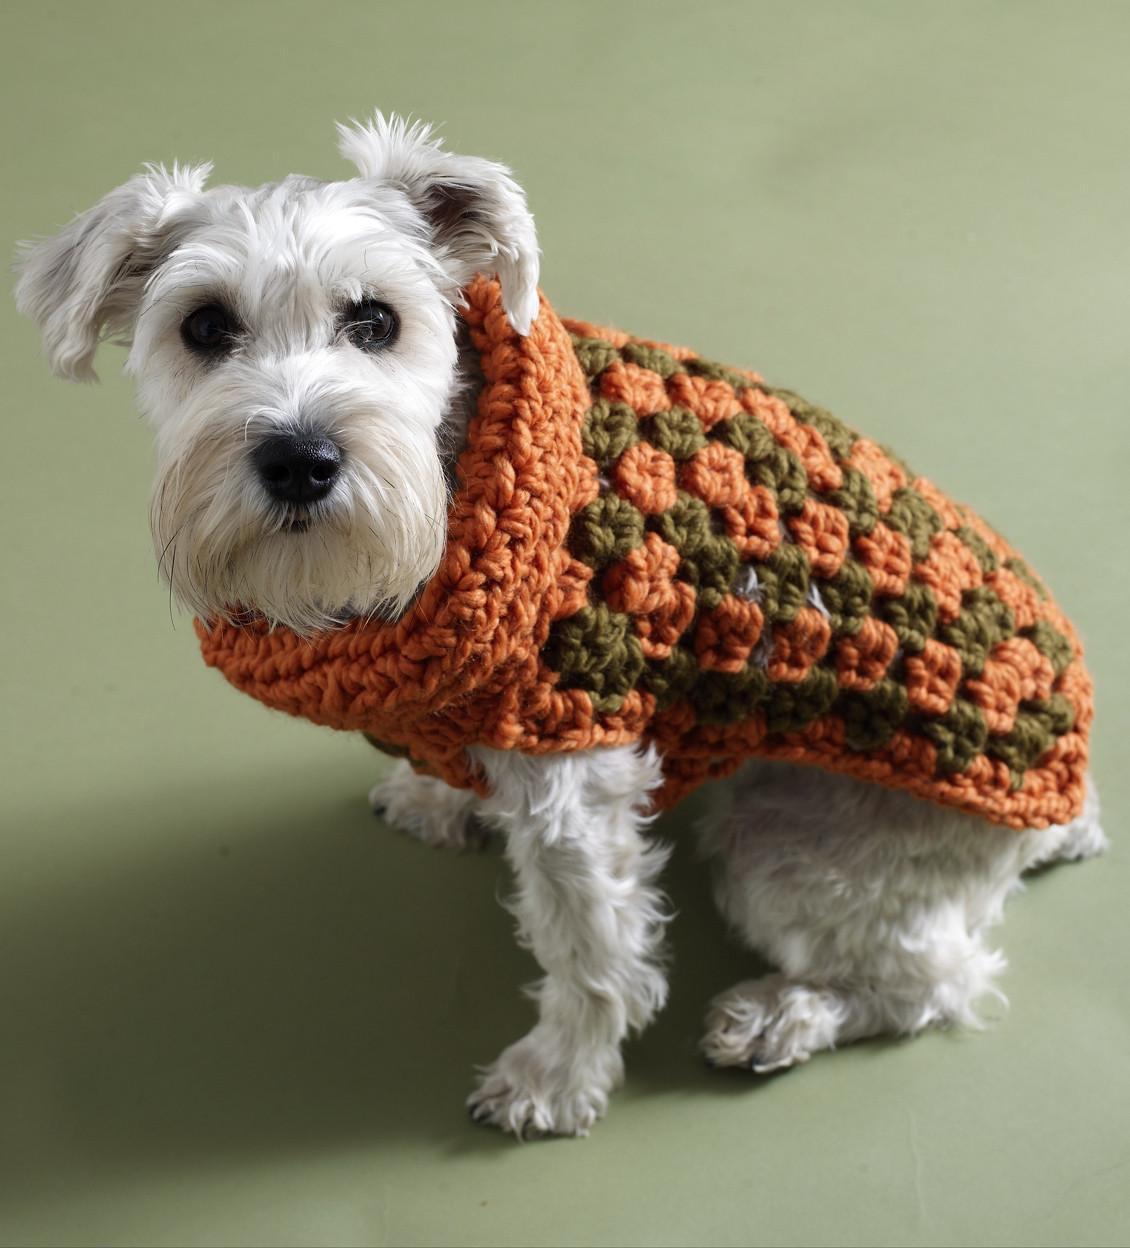 Crochet Dog Coat Pattern Awesome Keep Your Dog Warm with A Crochet Dog Sweater Of Marvelous 41 Photos Crochet Dog Coat Pattern